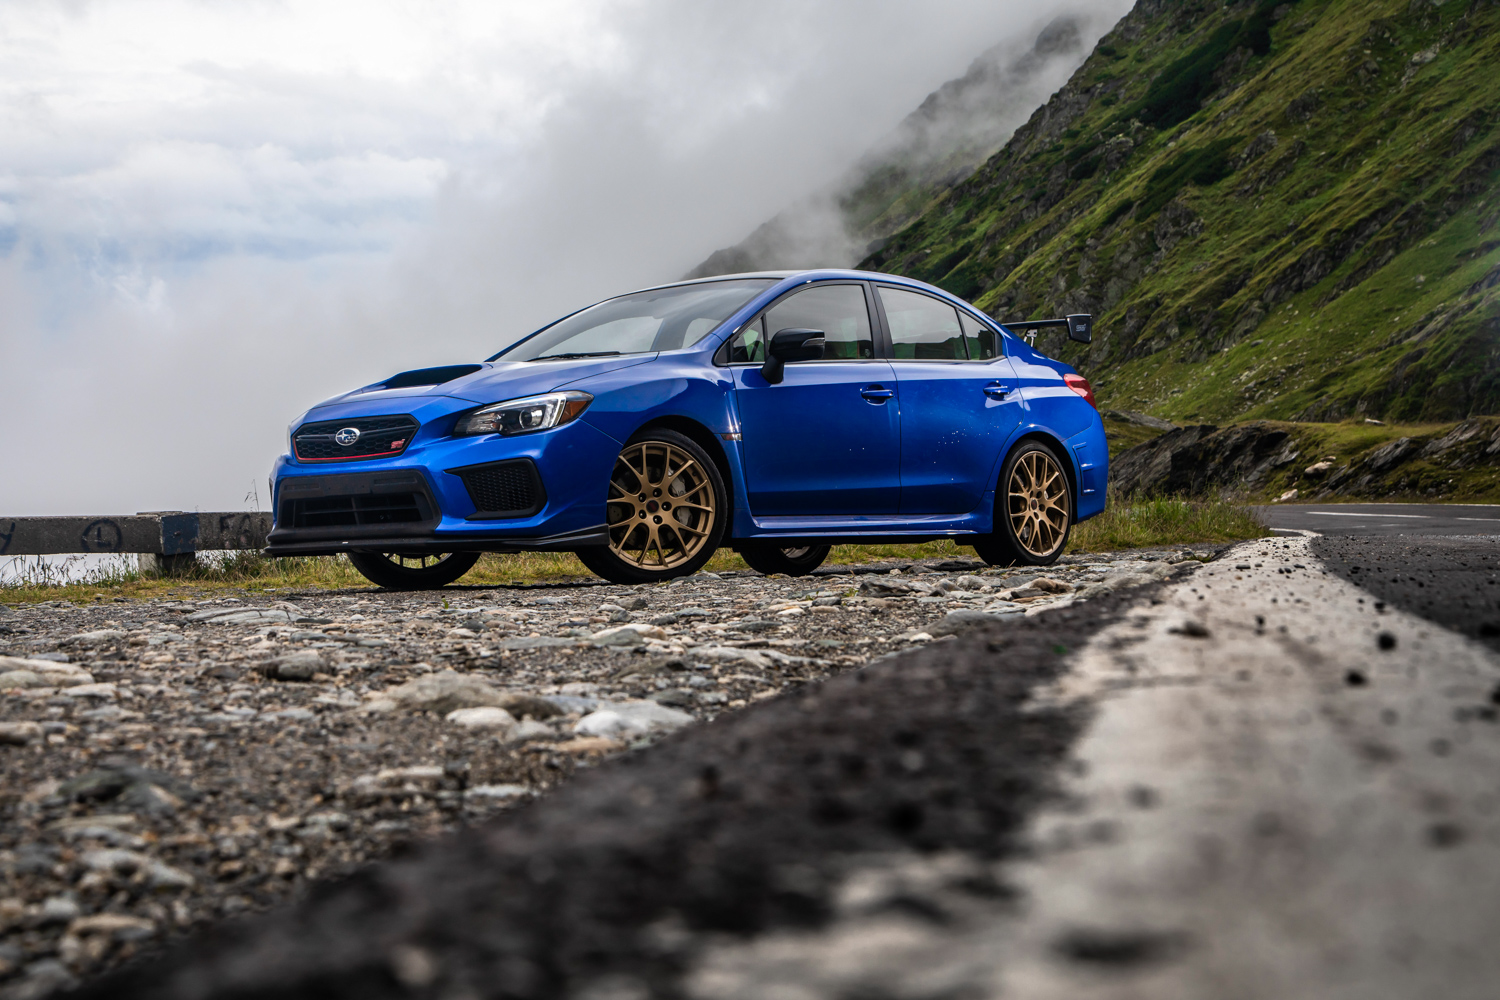 Subaru WRX STI Type RA epic mountain road parked